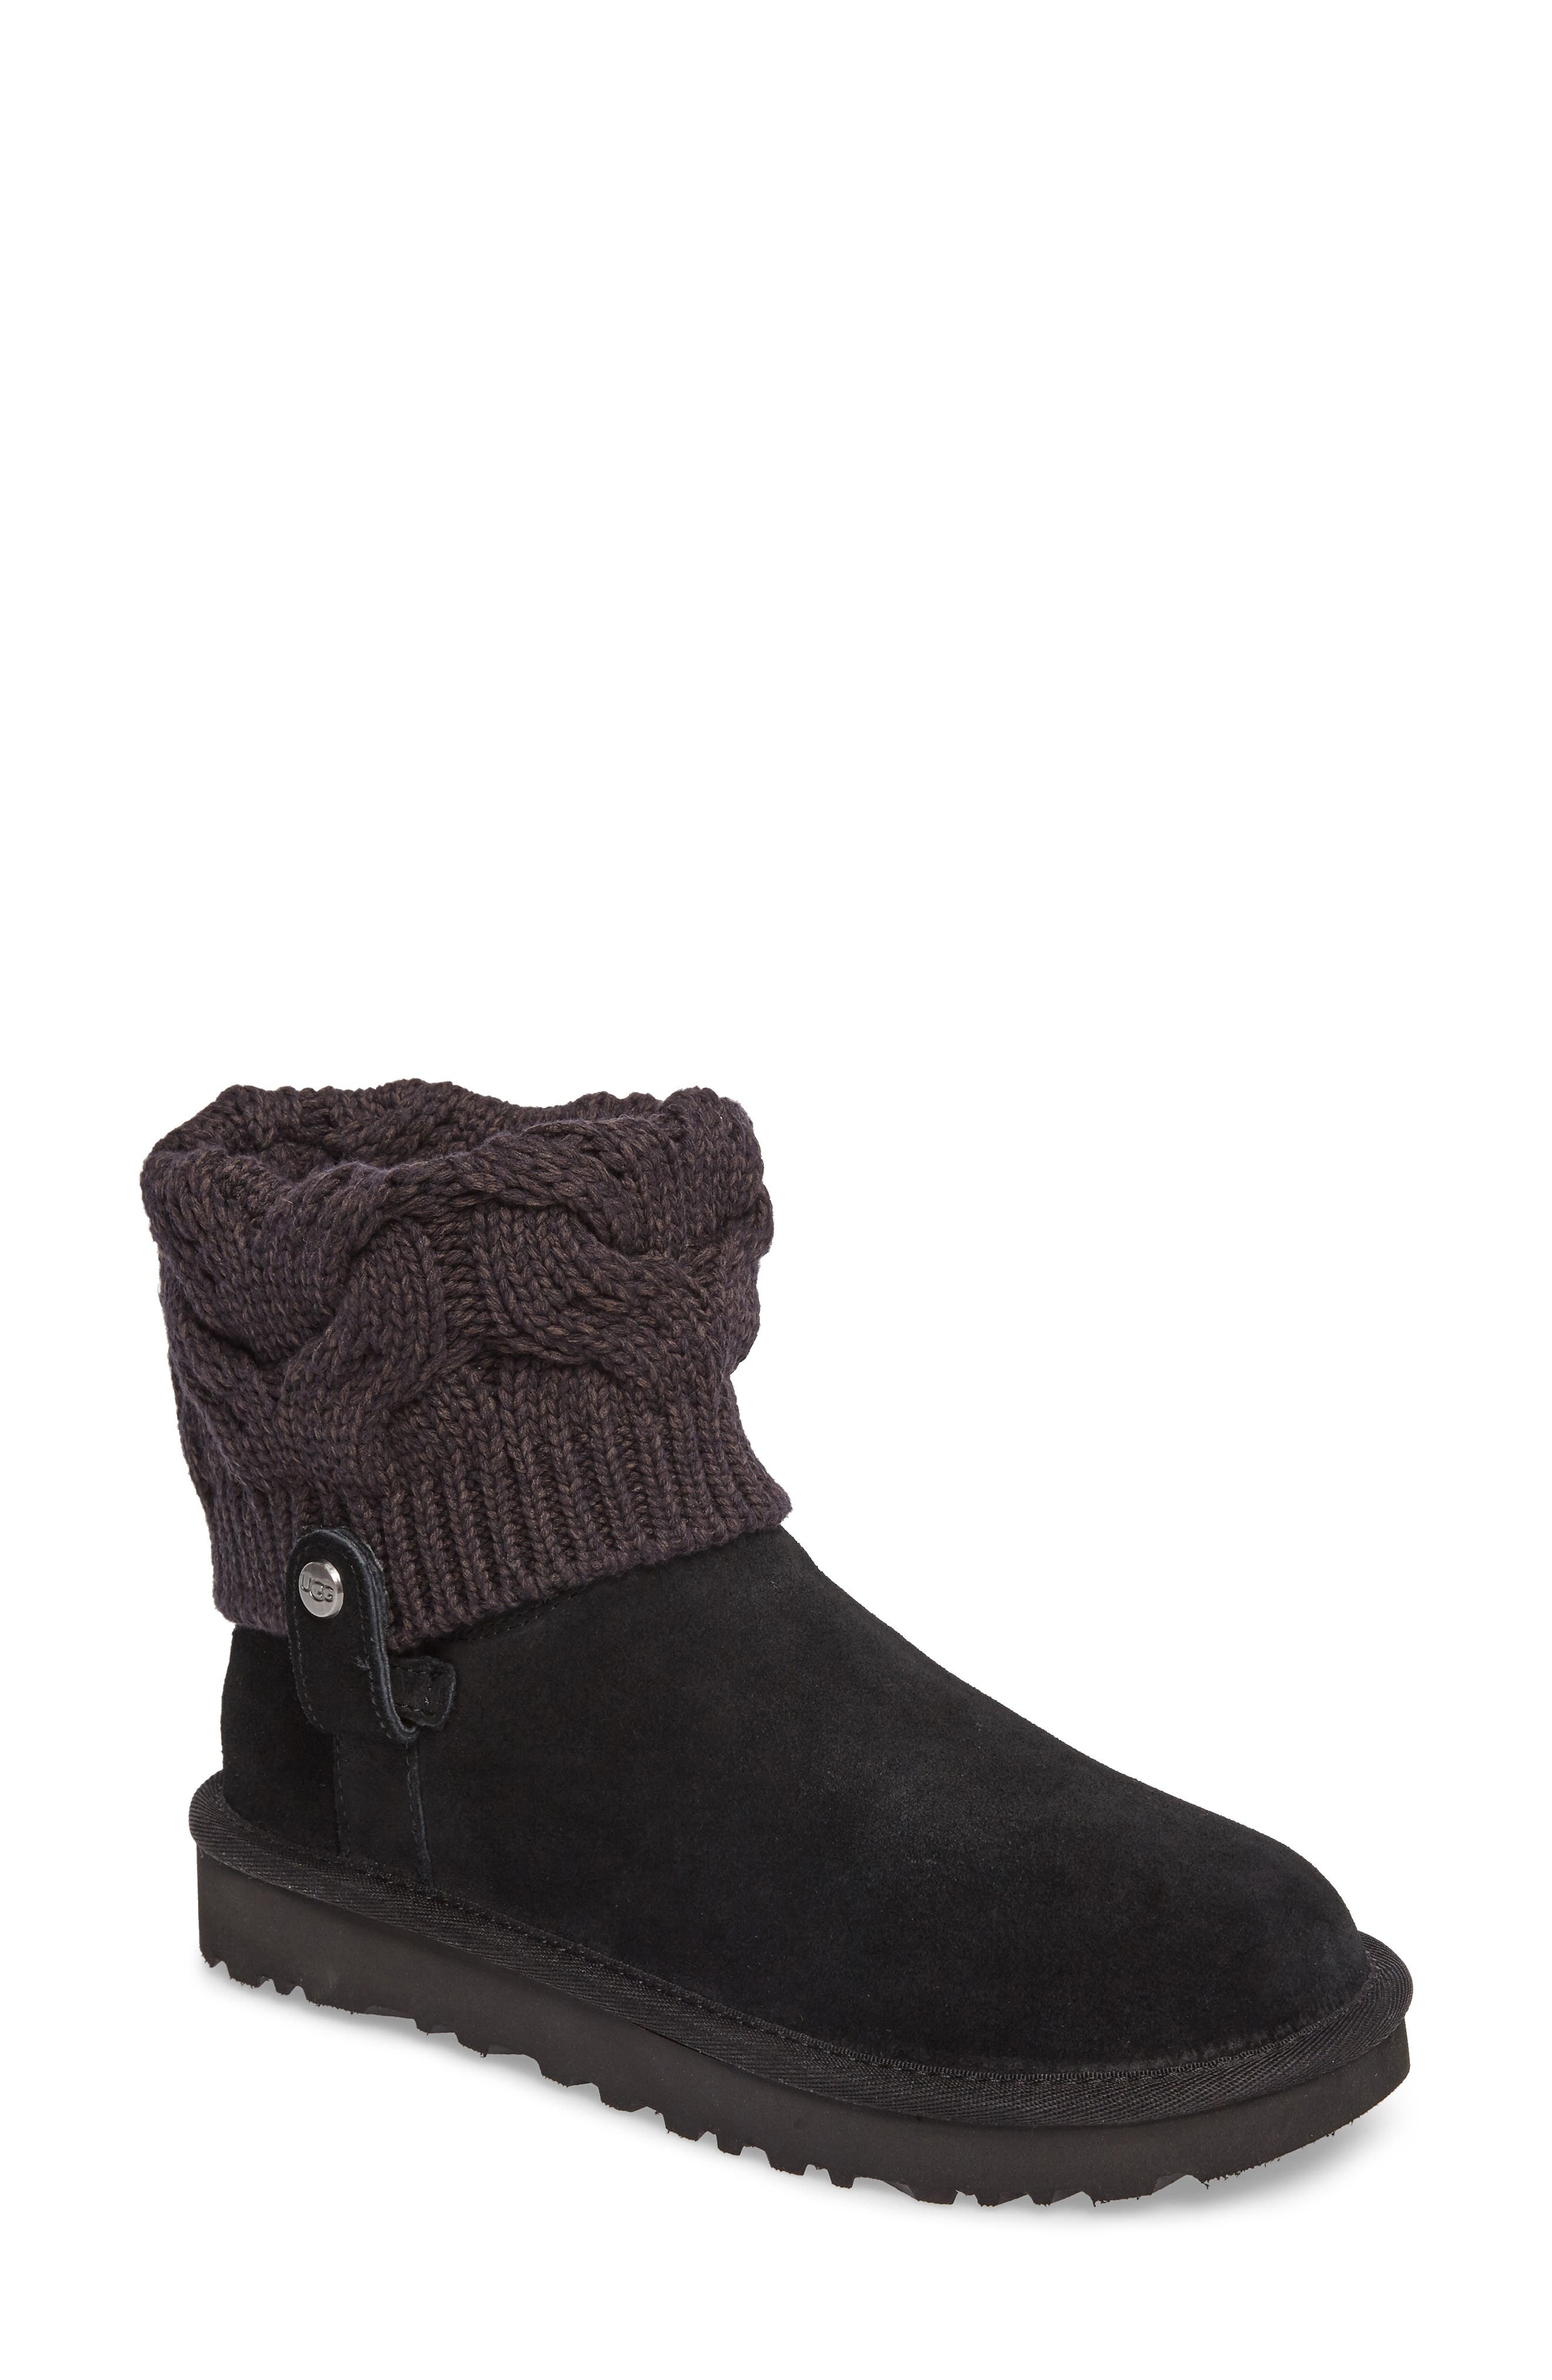 Saela Knit Cuff Boot,                         Main,                         color, Black Suede